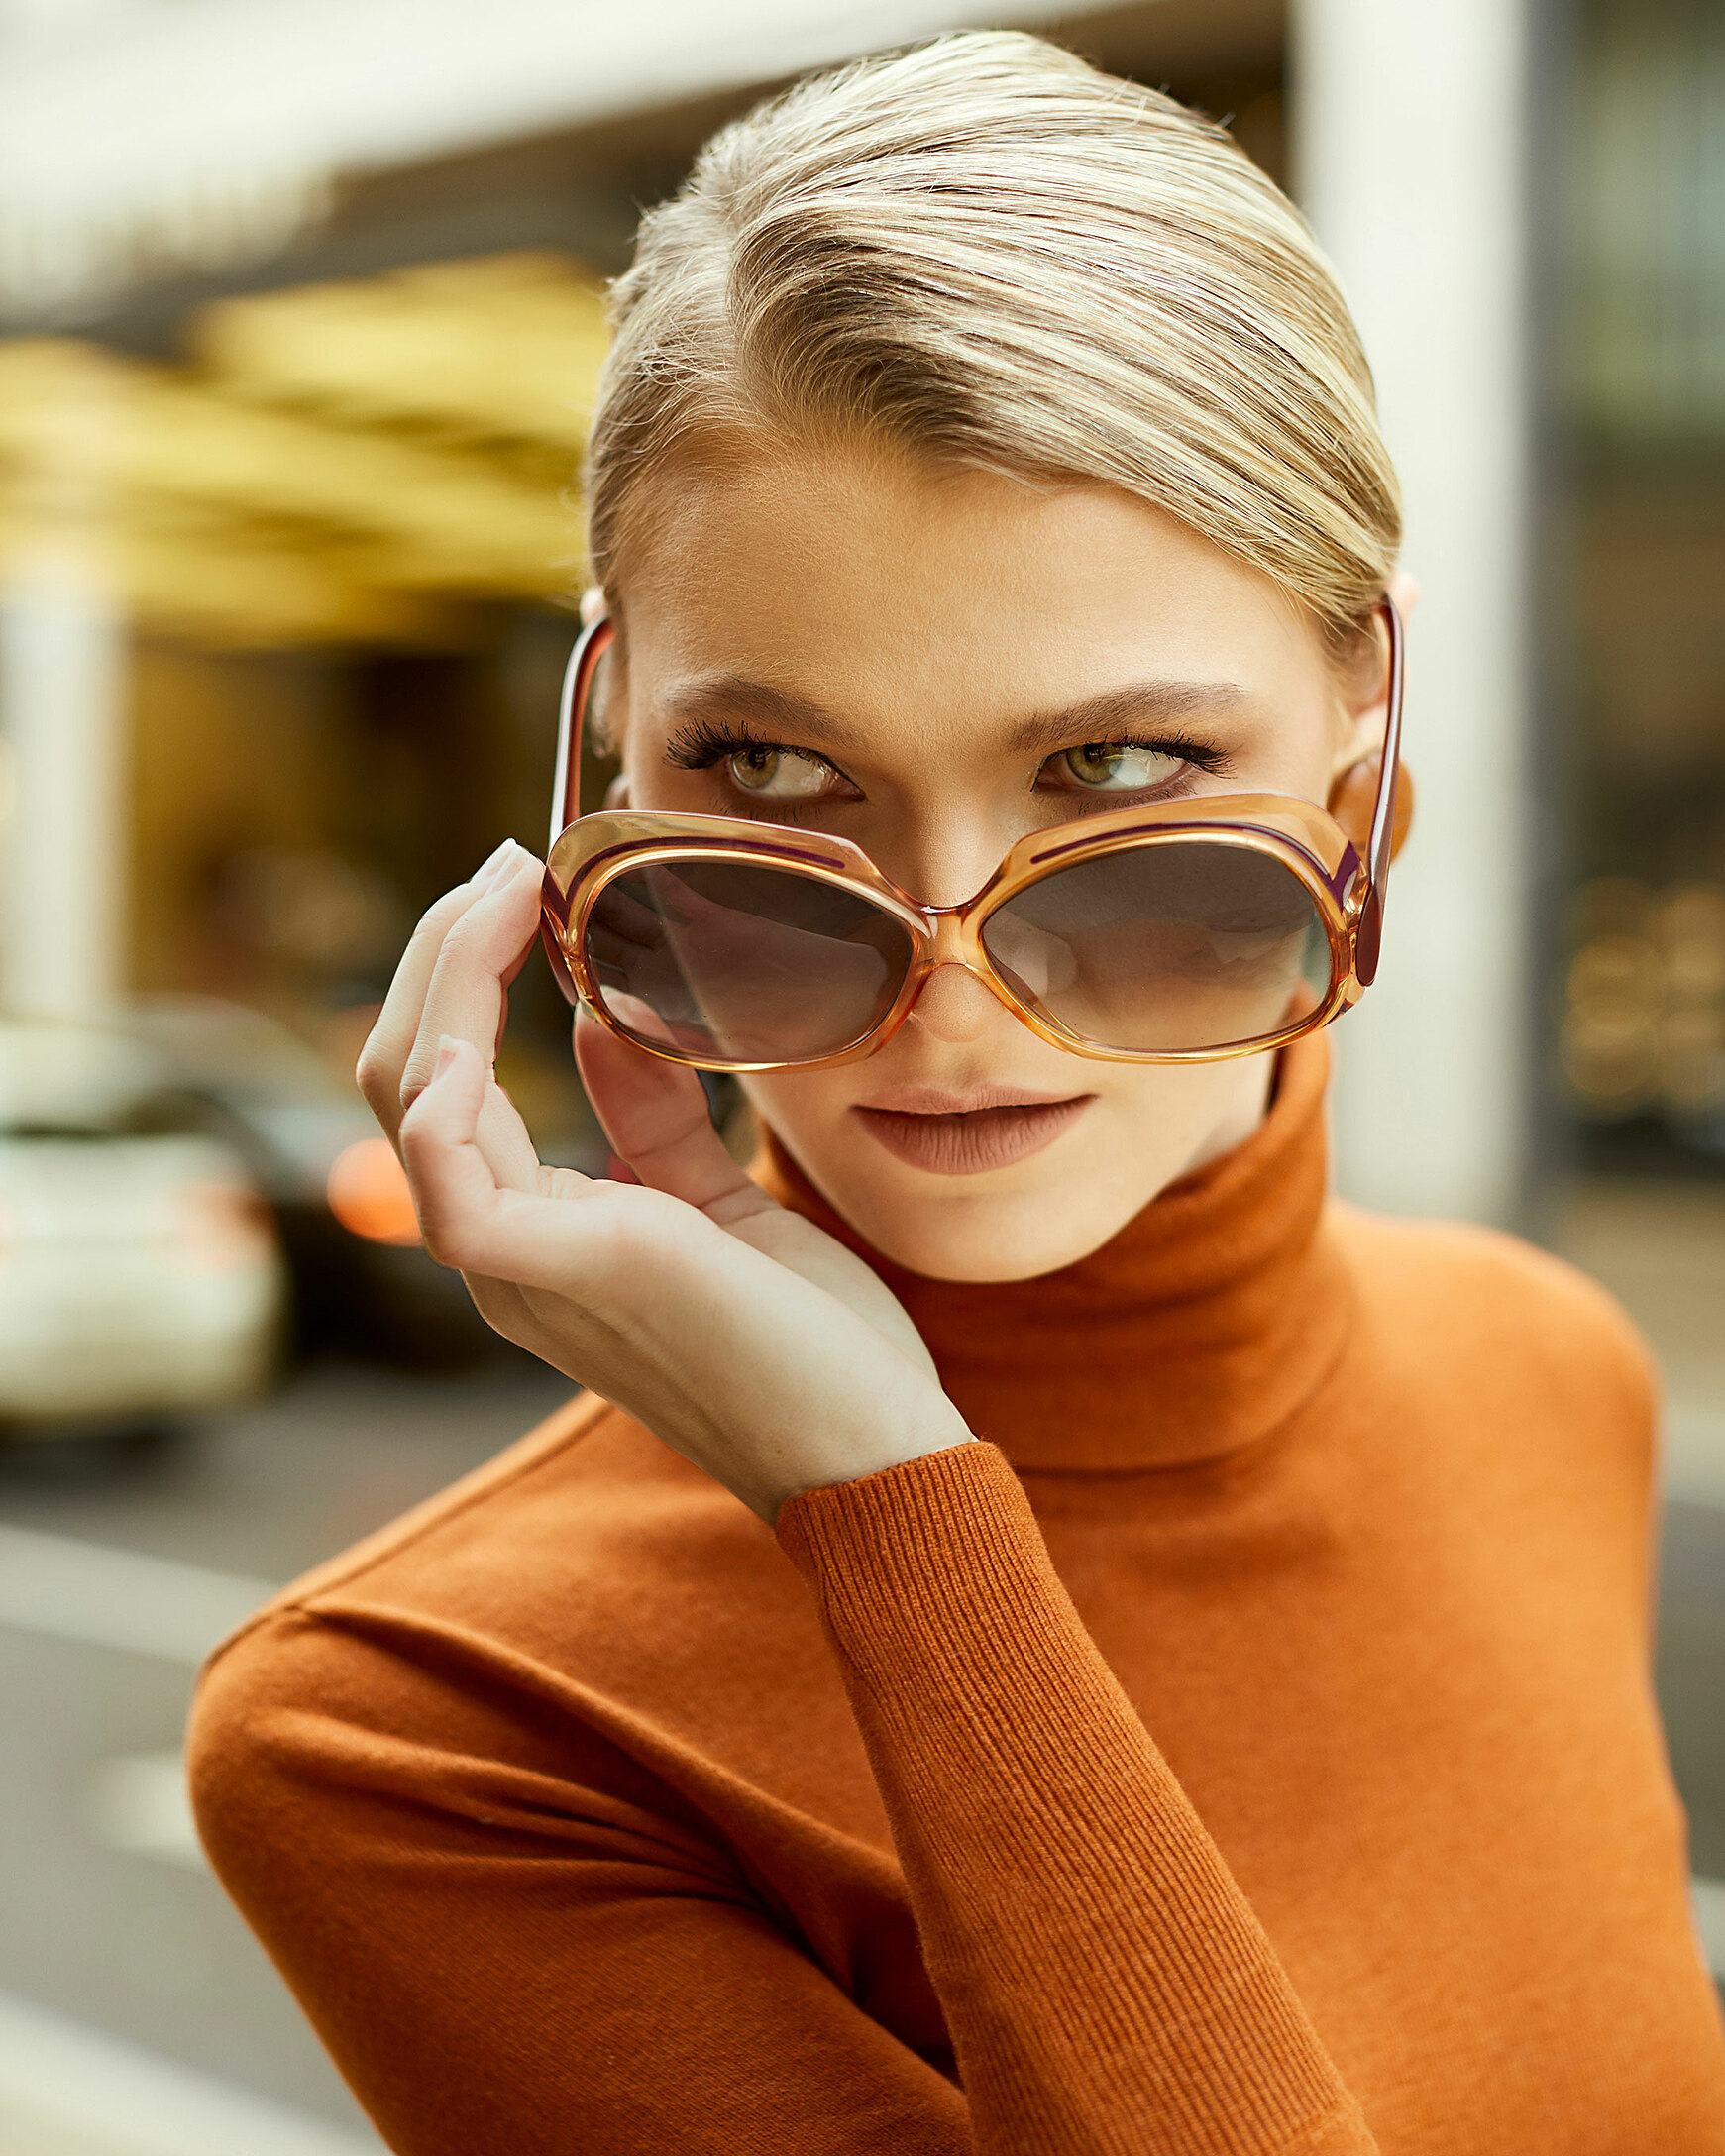 A portrait of a blond hair model with orange big sunglasses and an orange pullover with a turtleneck in an outdoor location in front of a hotel with yellow lights